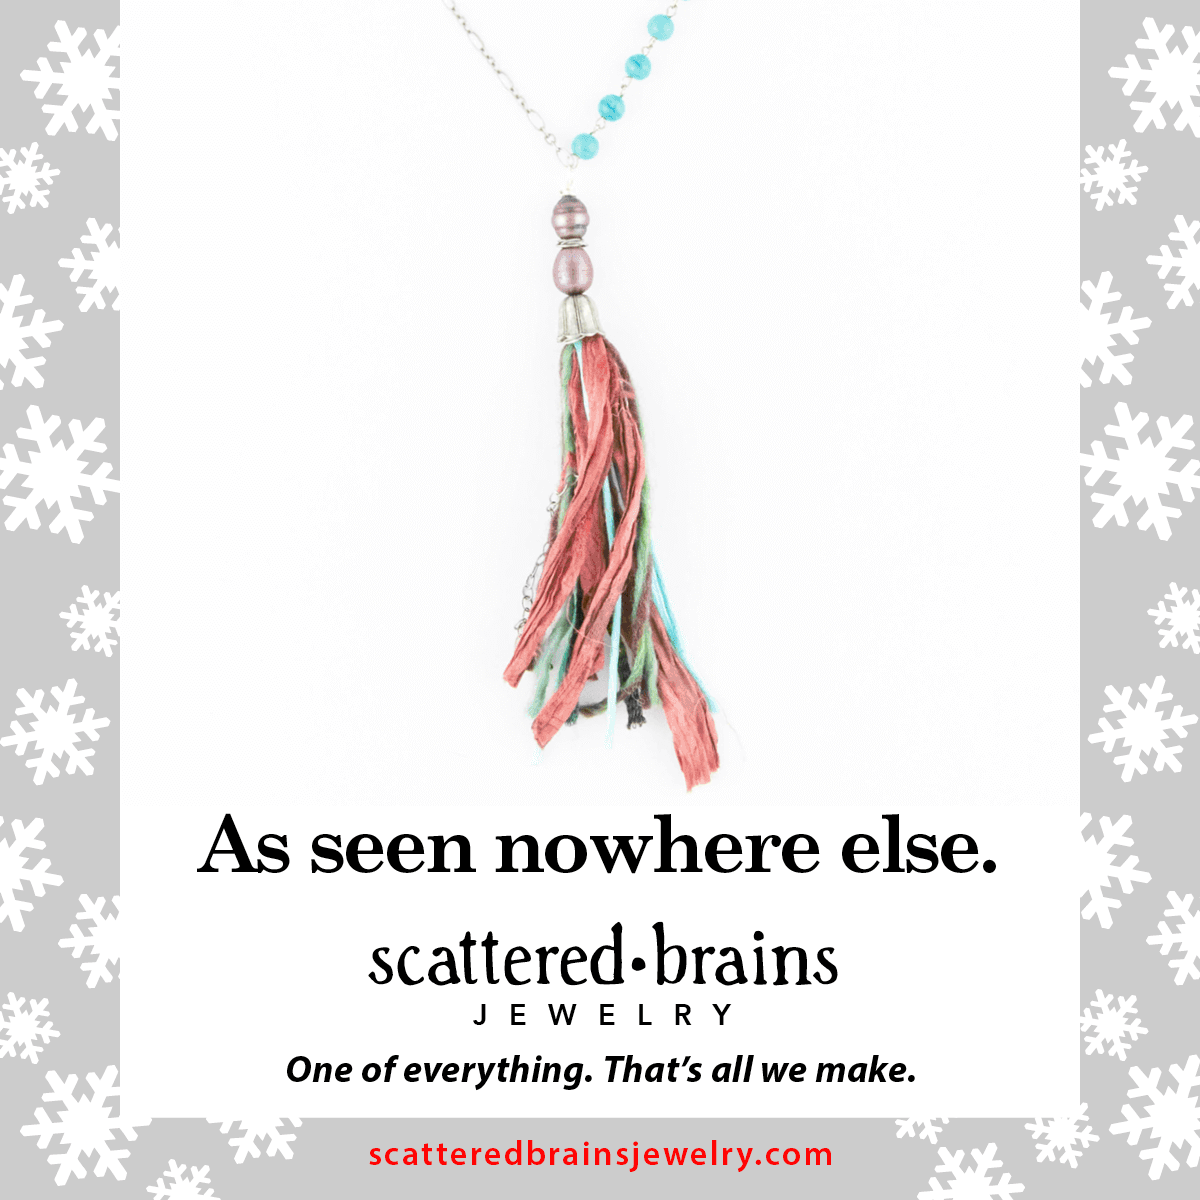 Scattered Brains Jewelry